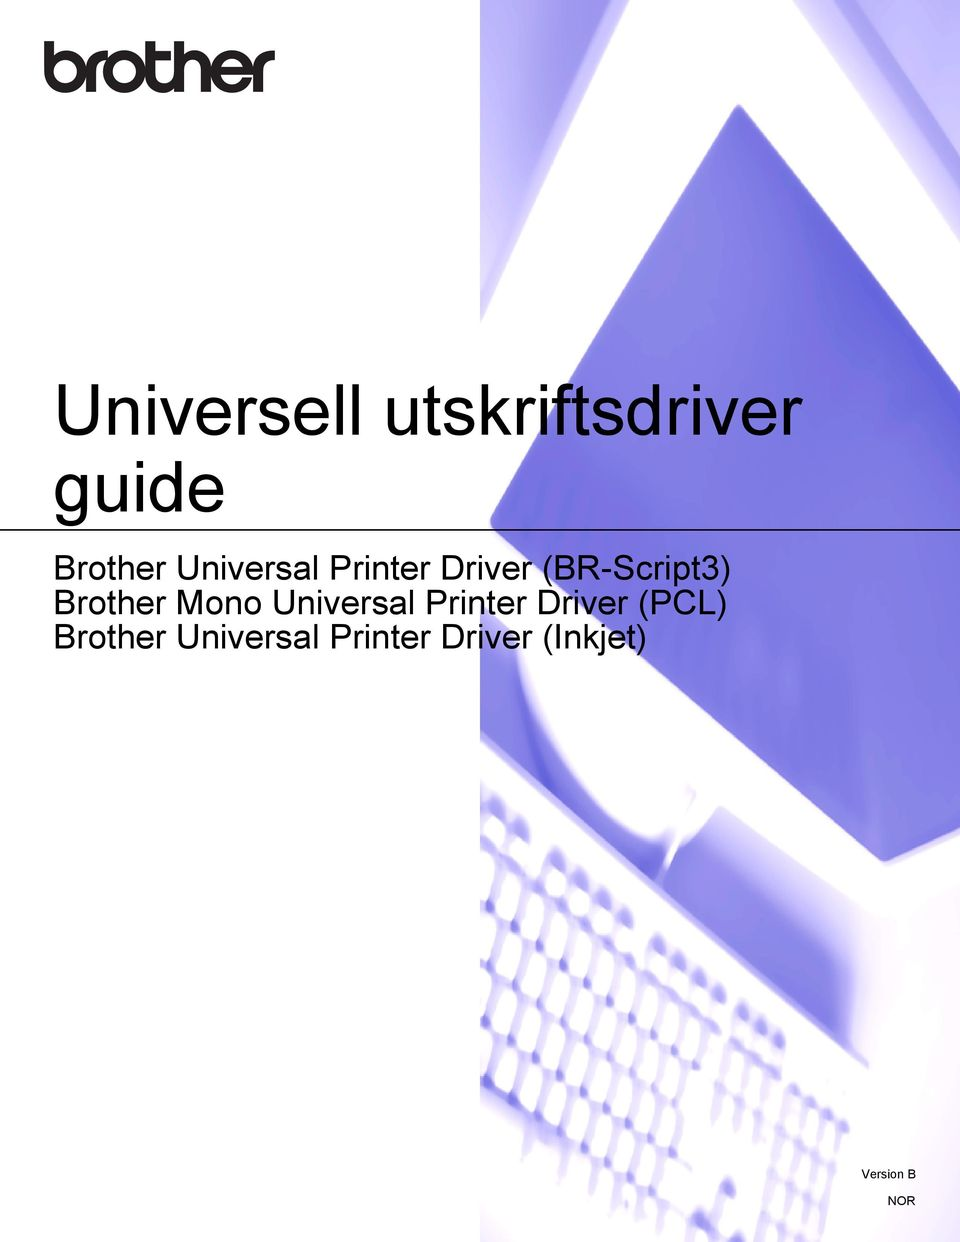 Brother Mono Universal Printer Driver (PCL)